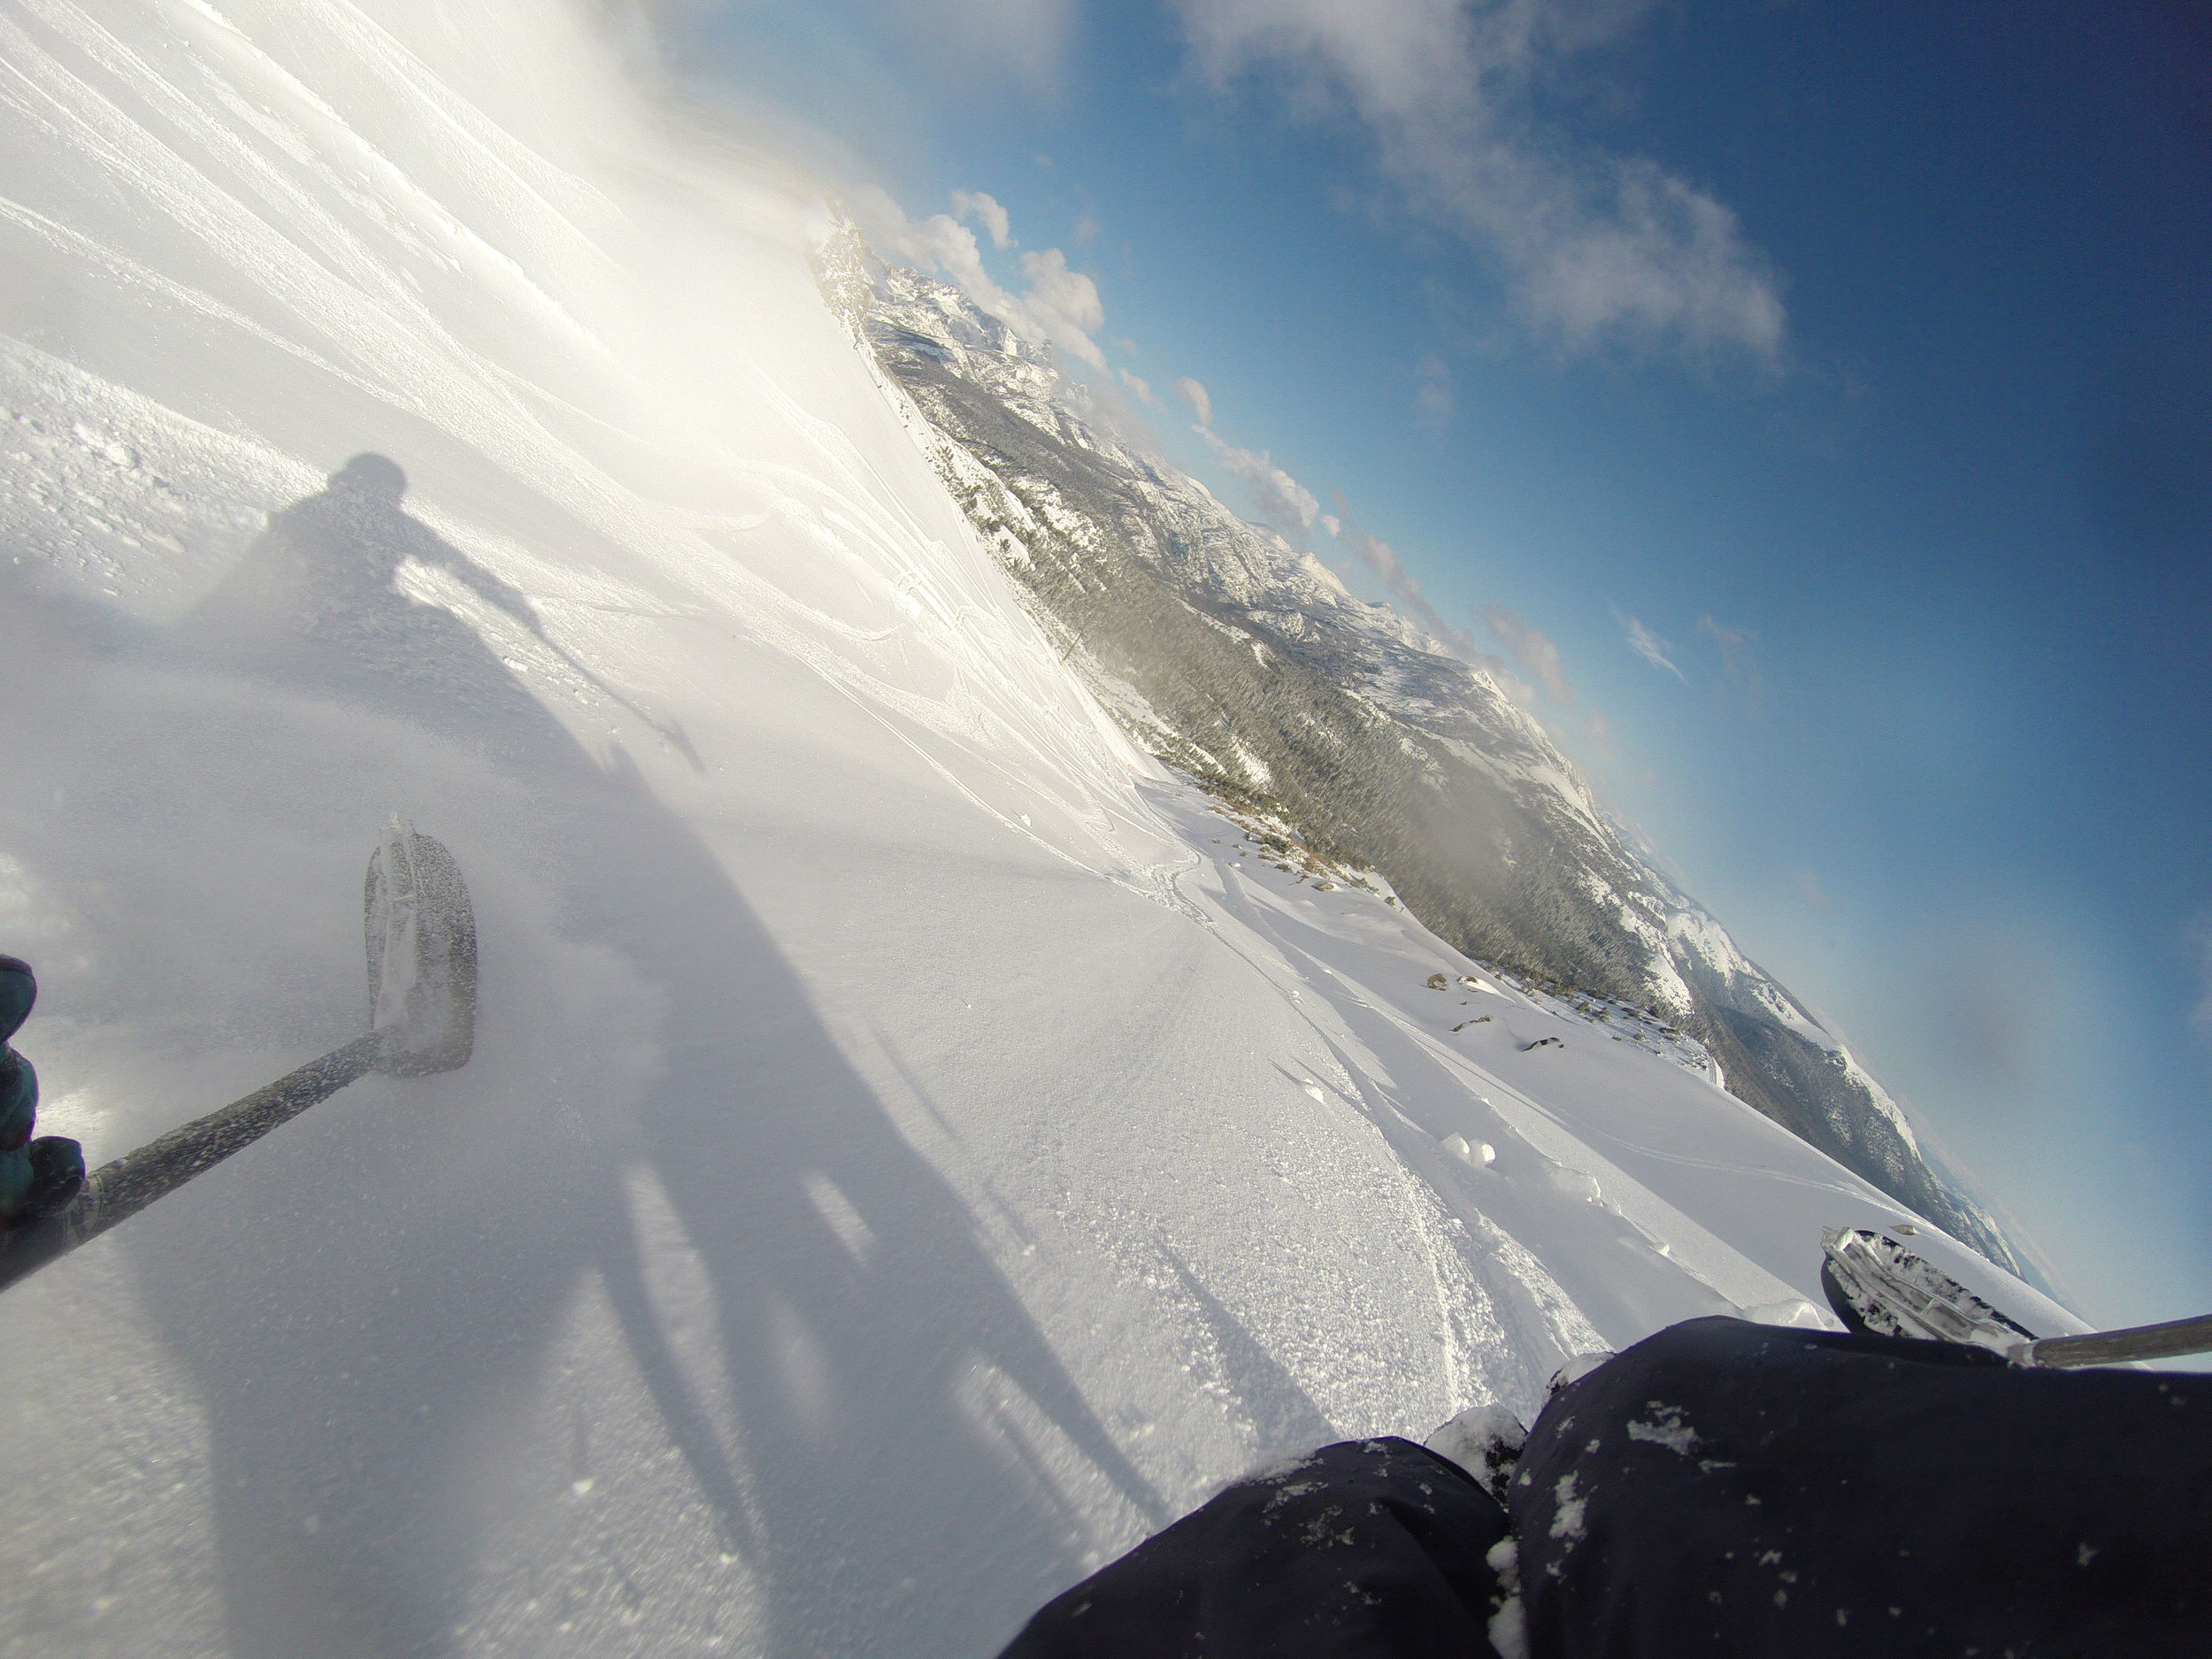 Scored a powder day at Mammoth on May 9, 2015. Good thing i brought my ski gear!